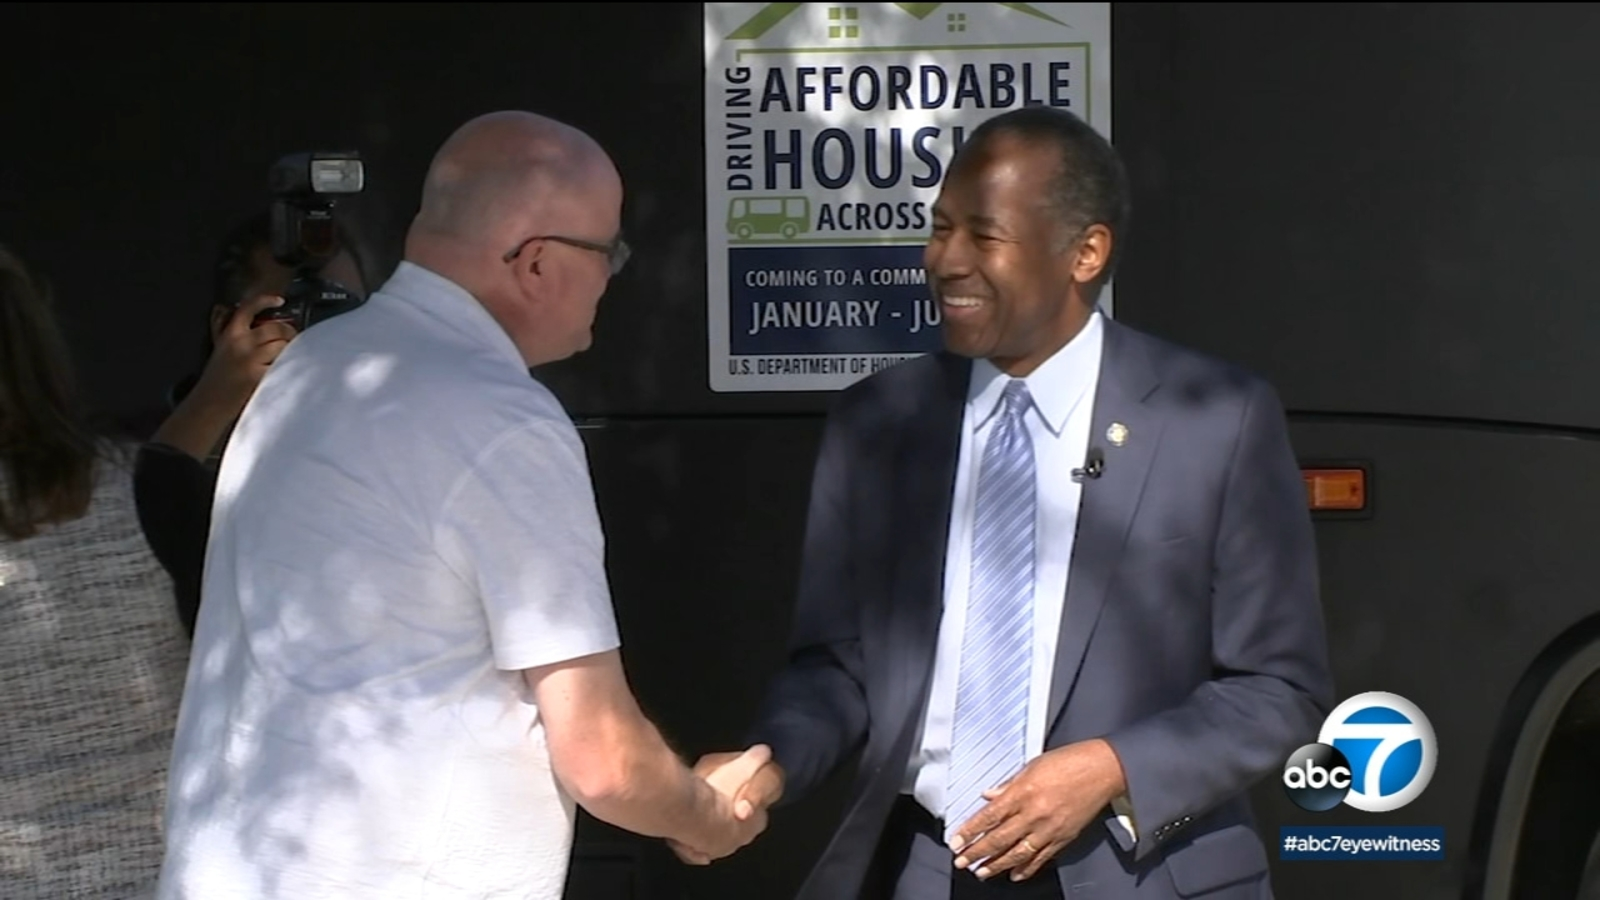 HUD Secretary Ben Carson visits Riverside for discussion on homelessness, affordable housing